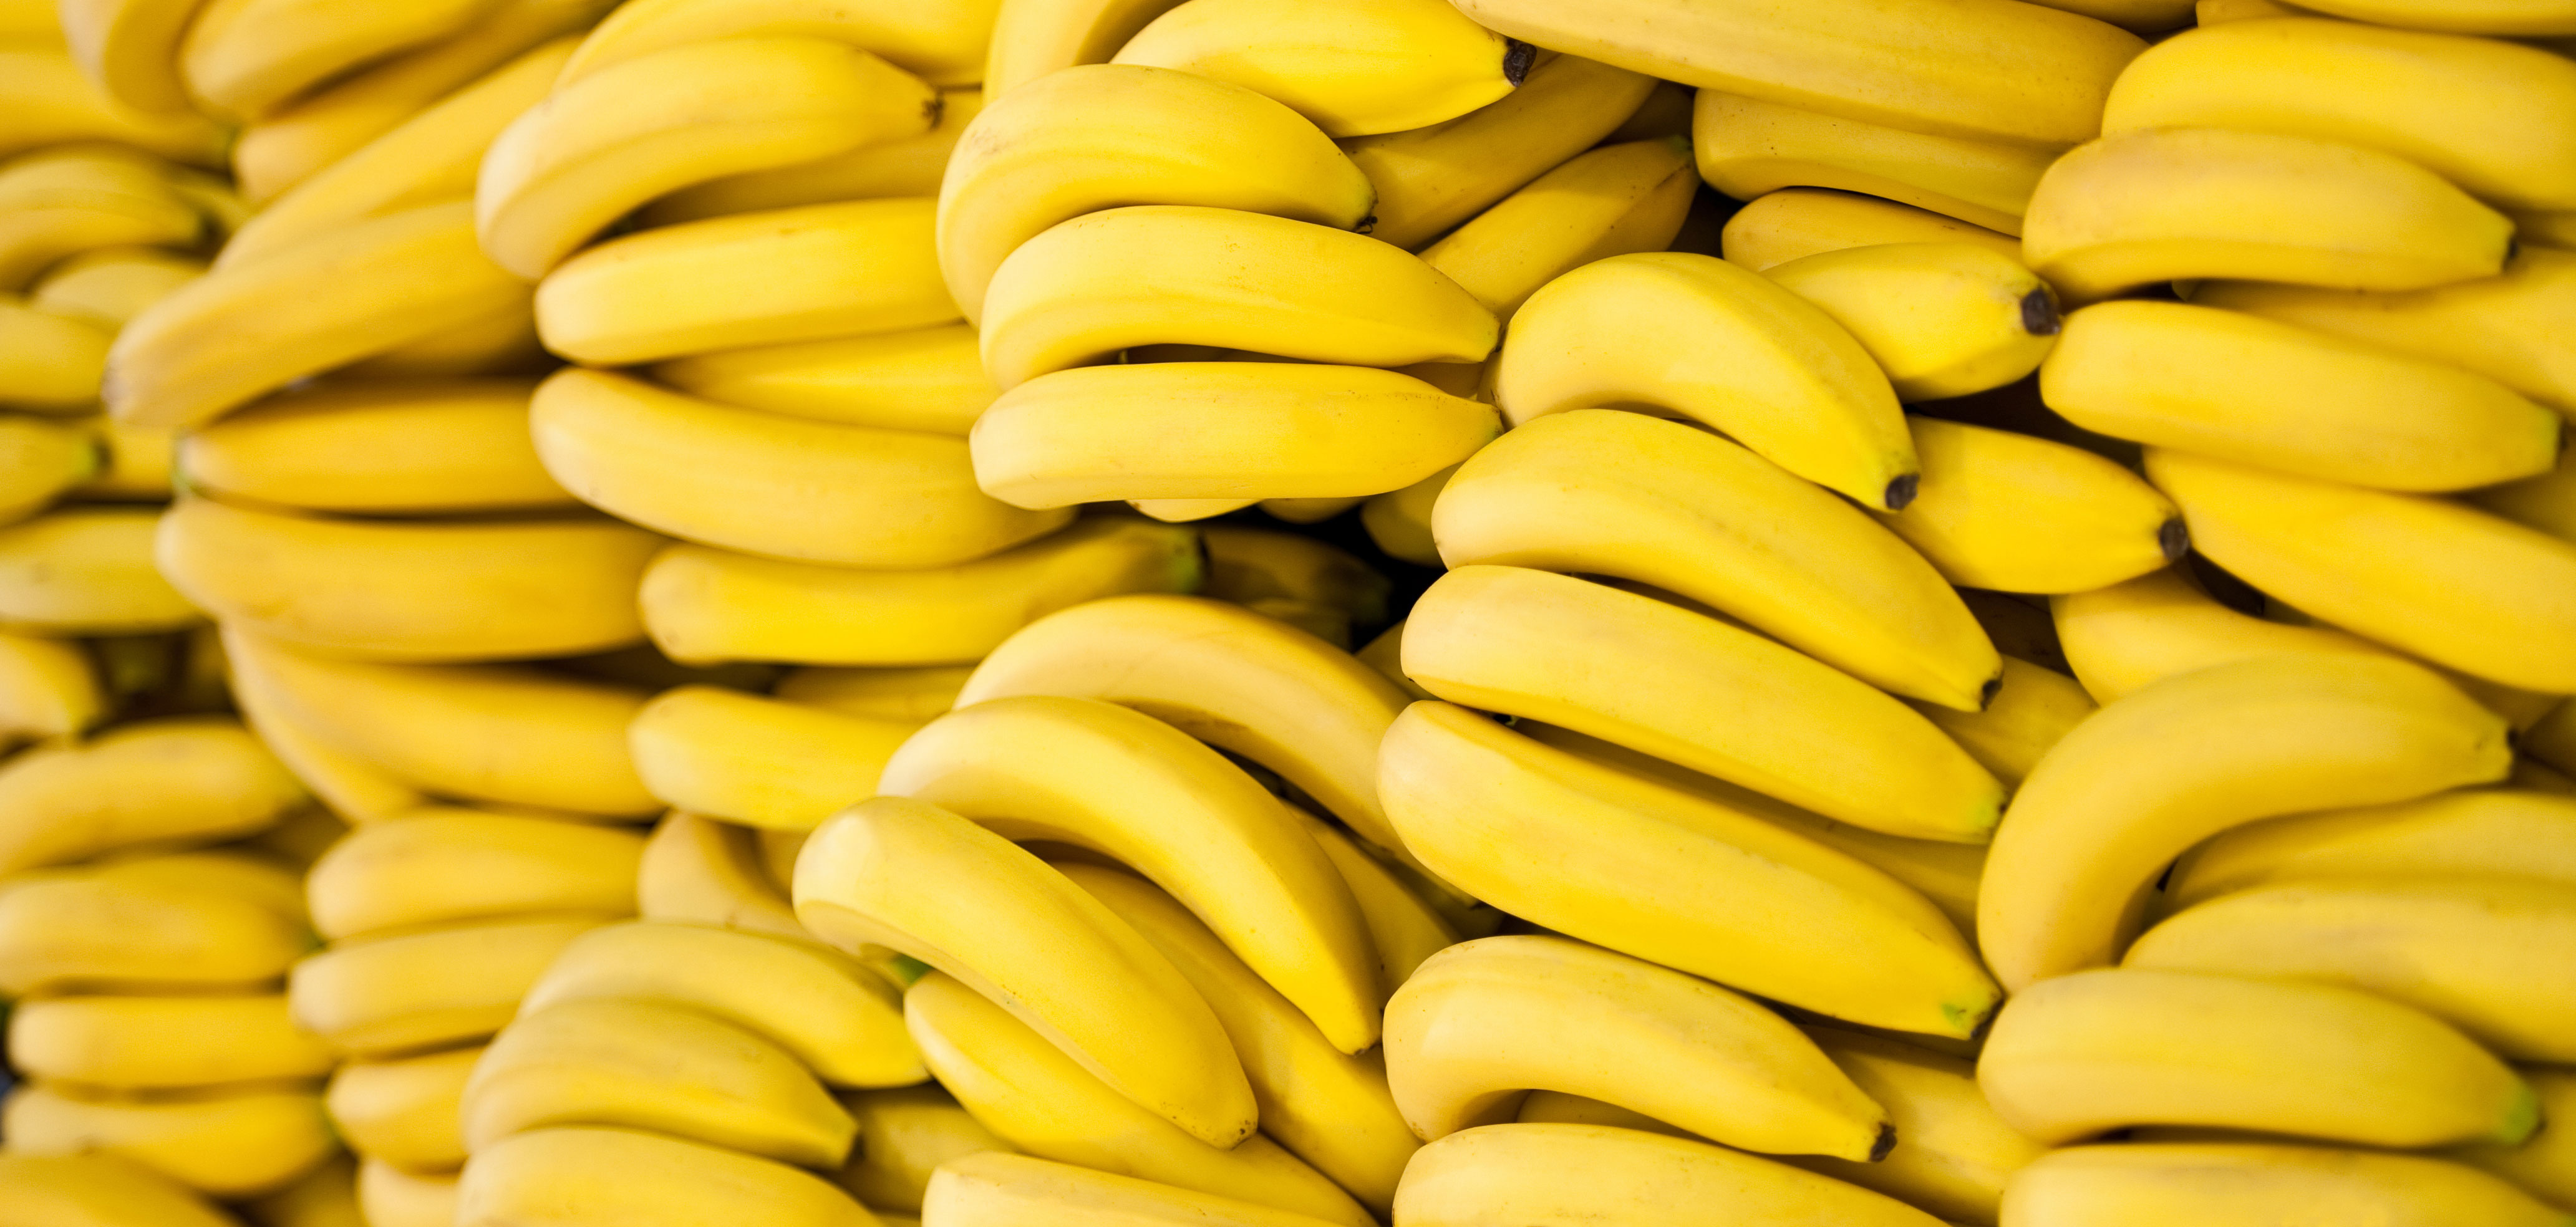 the great banana shortage of 2018 your questions answered